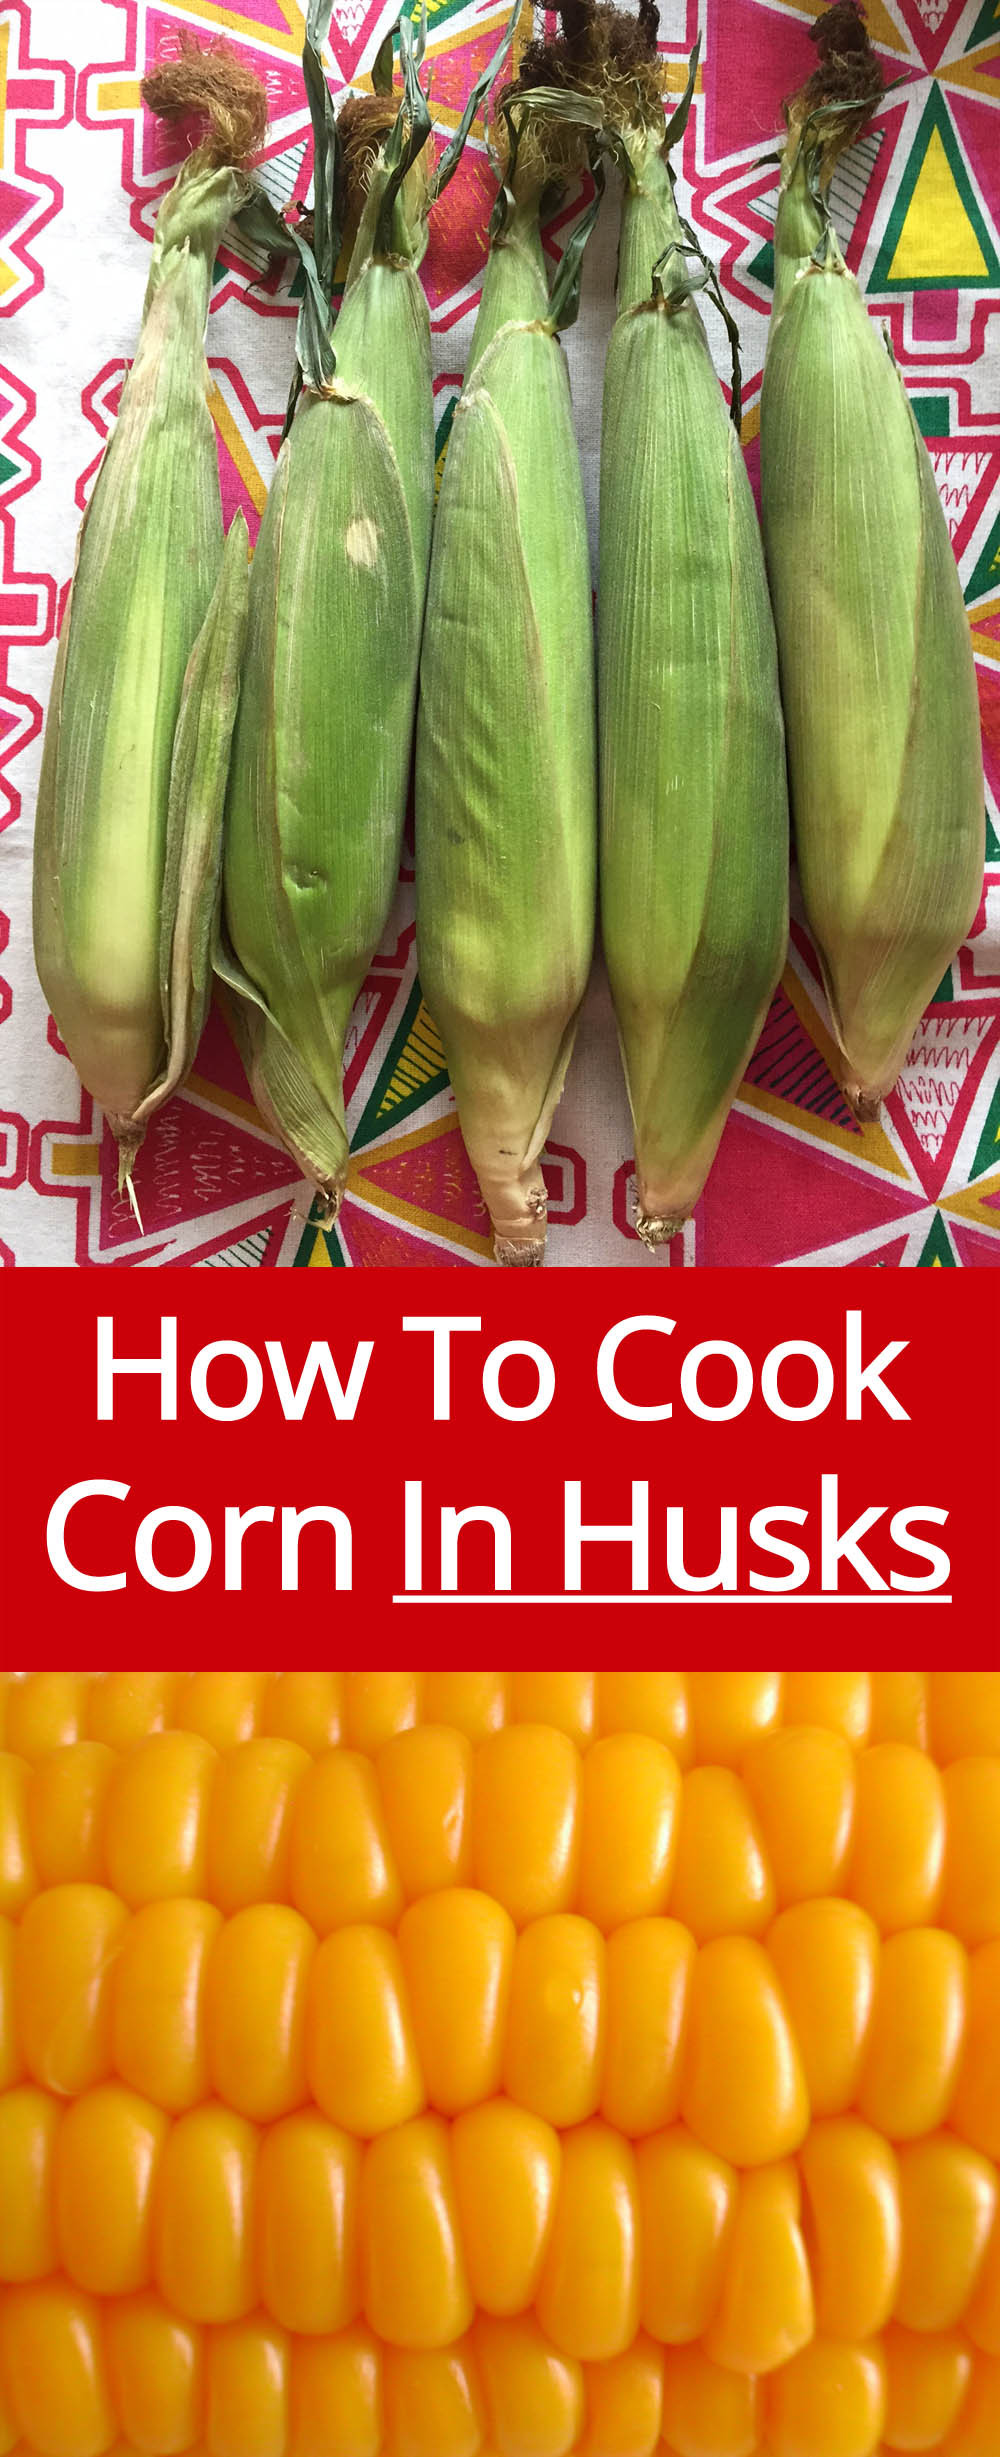 Microwave Corn On The Cob In Husk  How To Cook Corn In The Husk Microwave Grill Bake Boil